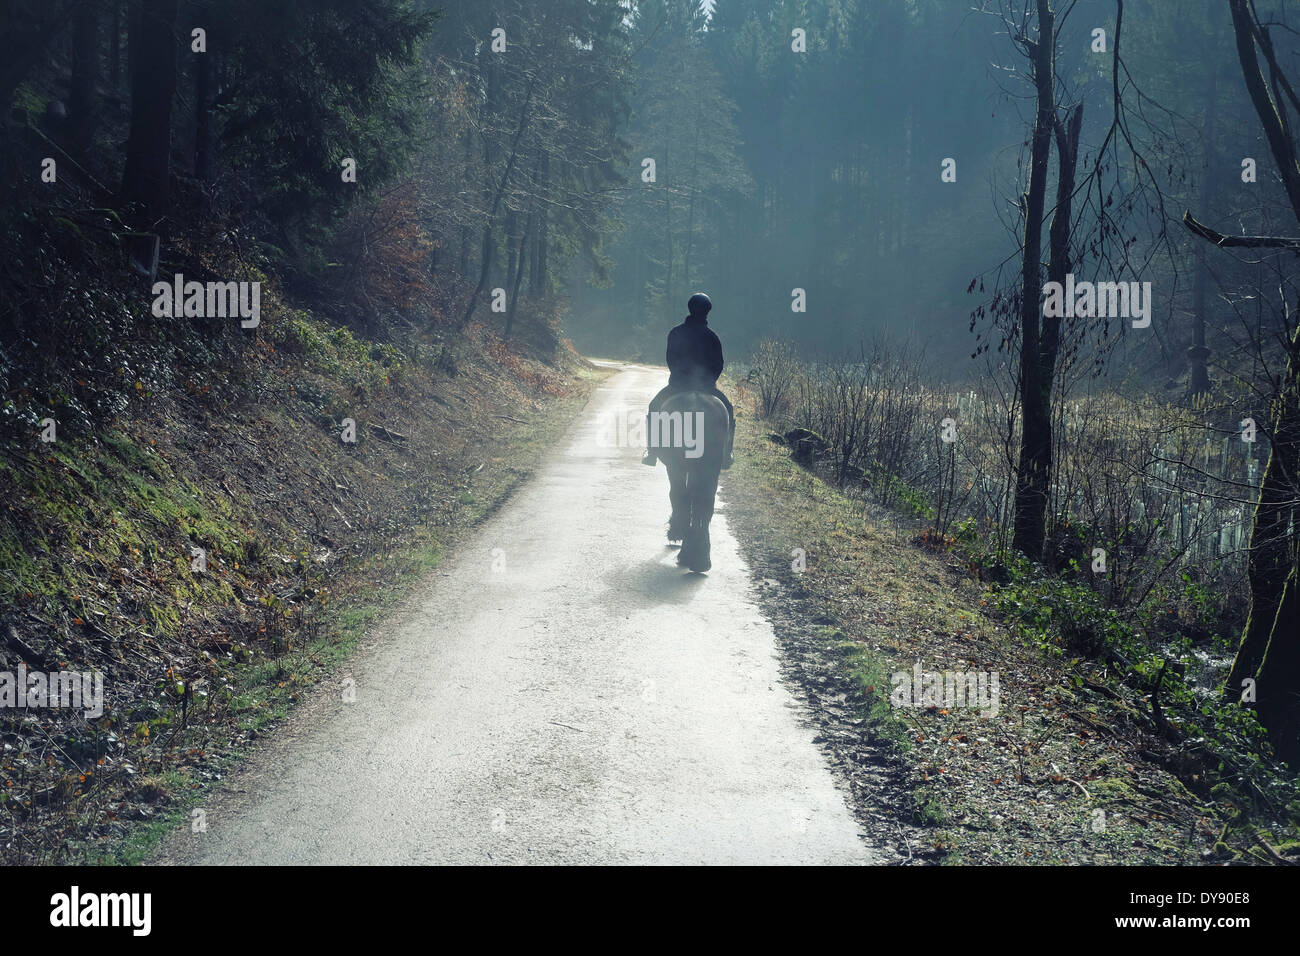 Germany, North Rhine-Westphalia, Bergisches Land, Rhein-Sieg-Kreis, lonely rider on forest track, view from the back - Stock Image